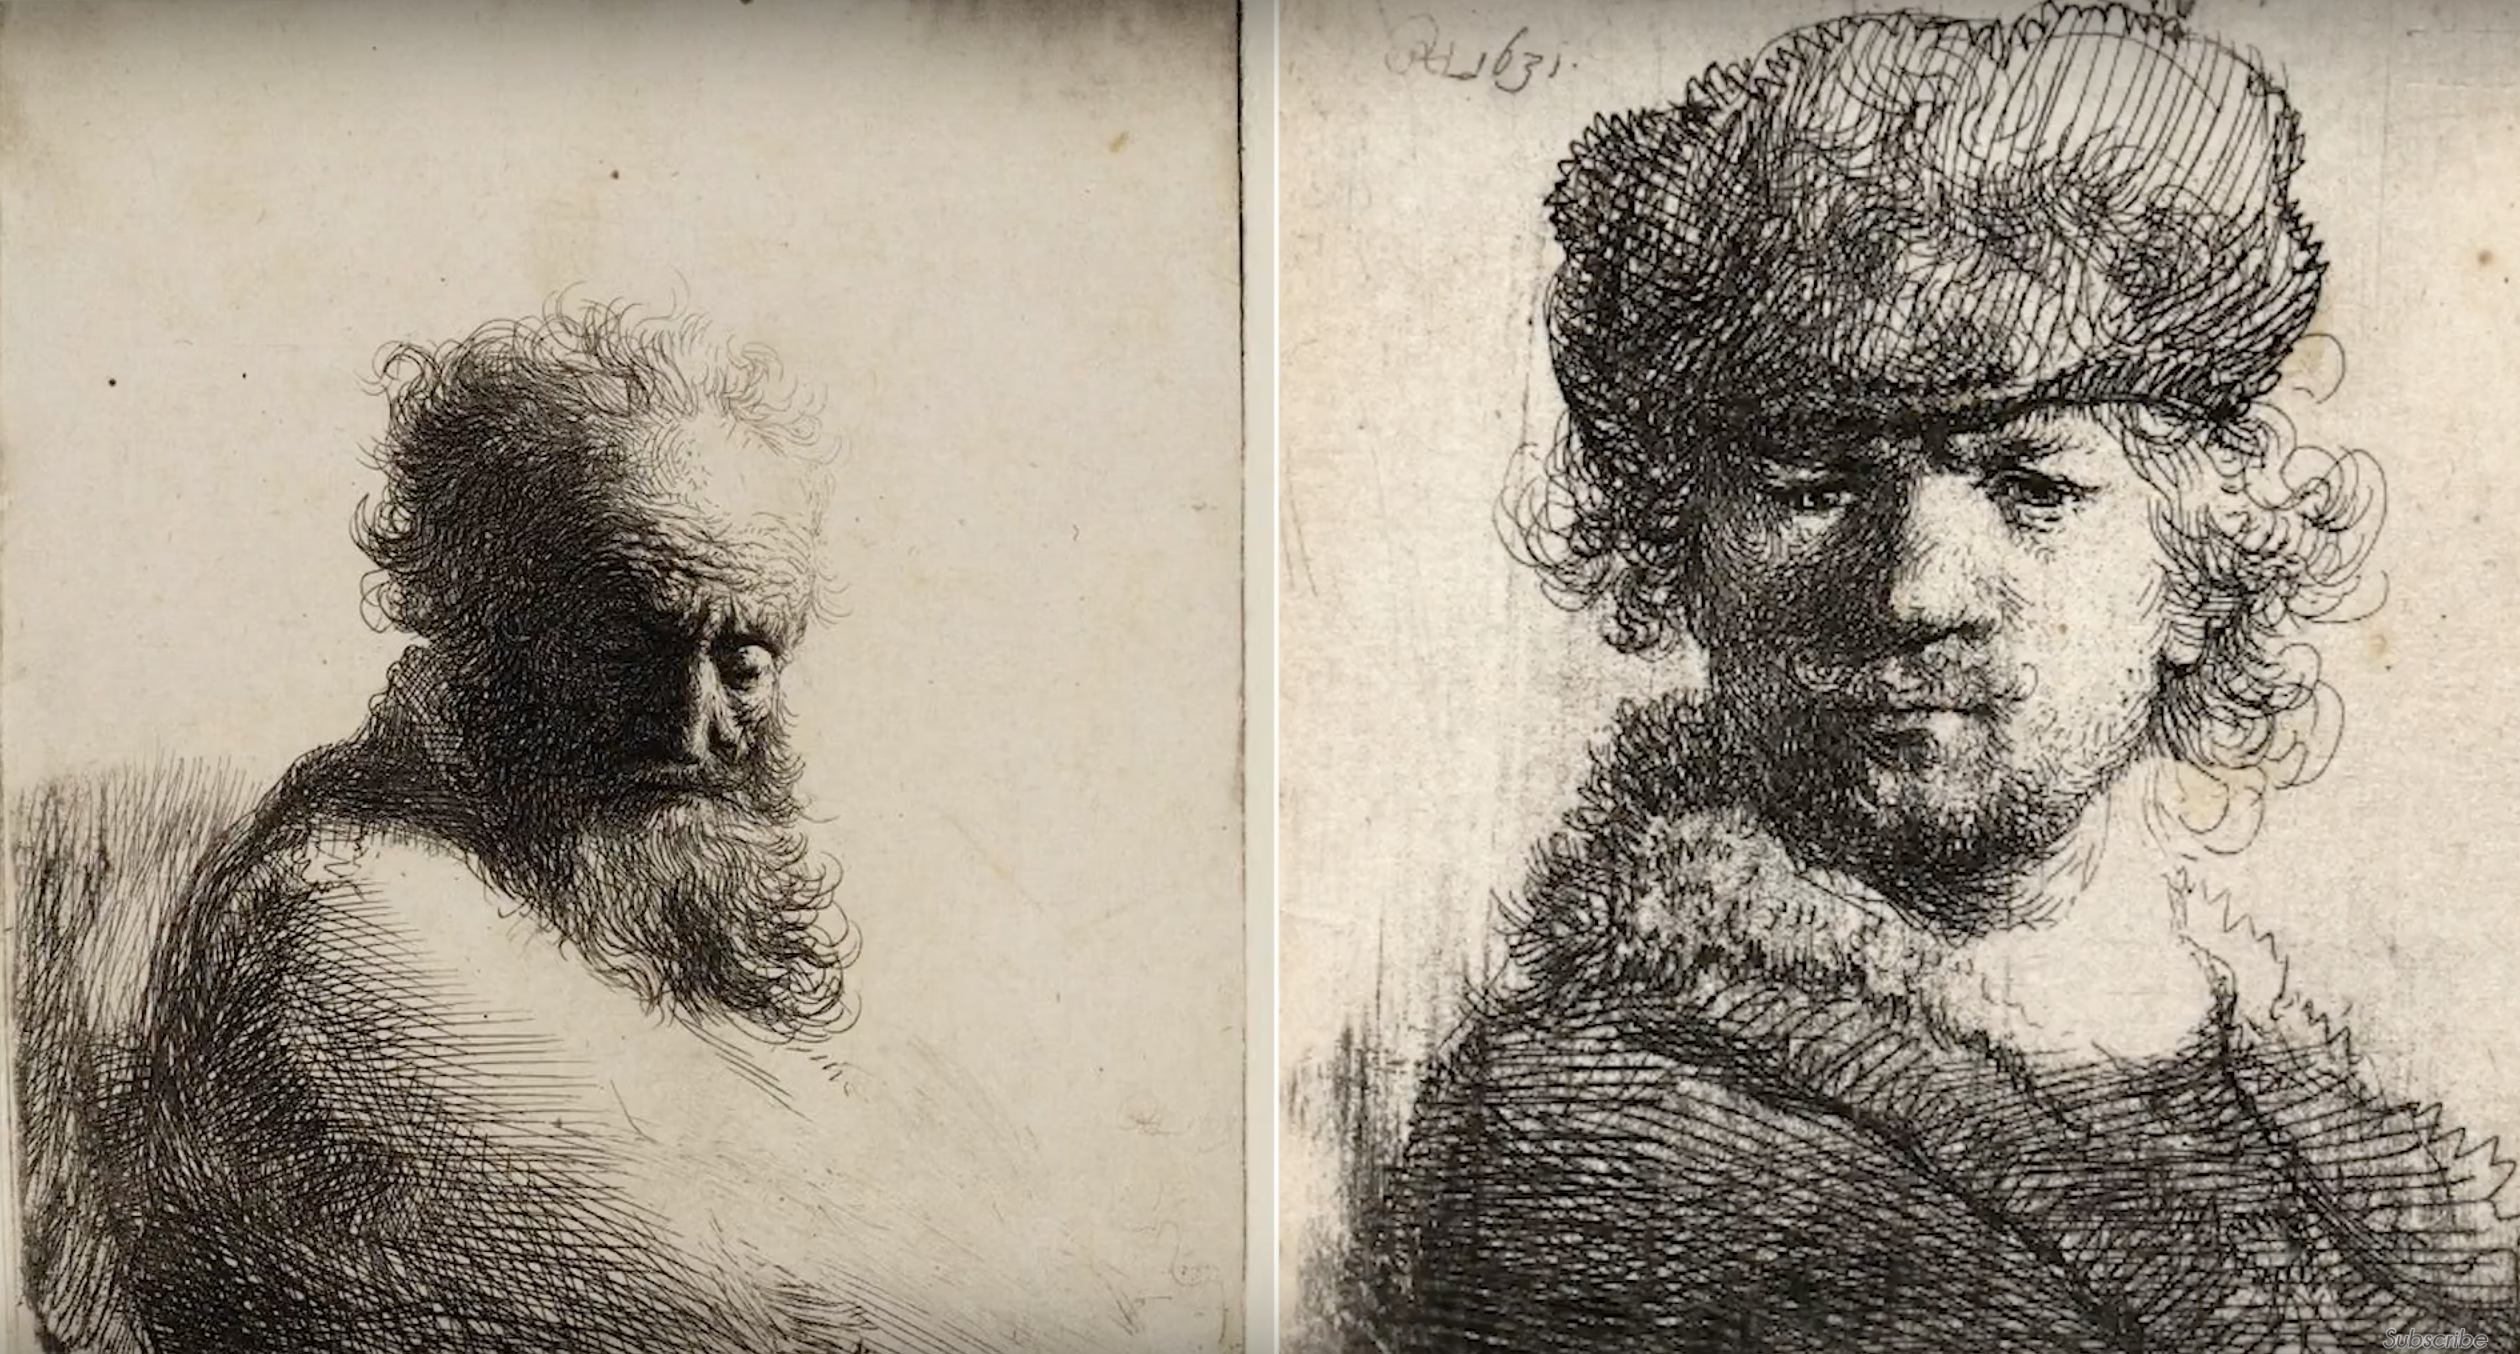 cross hatching, two self portraits by Rembrandt